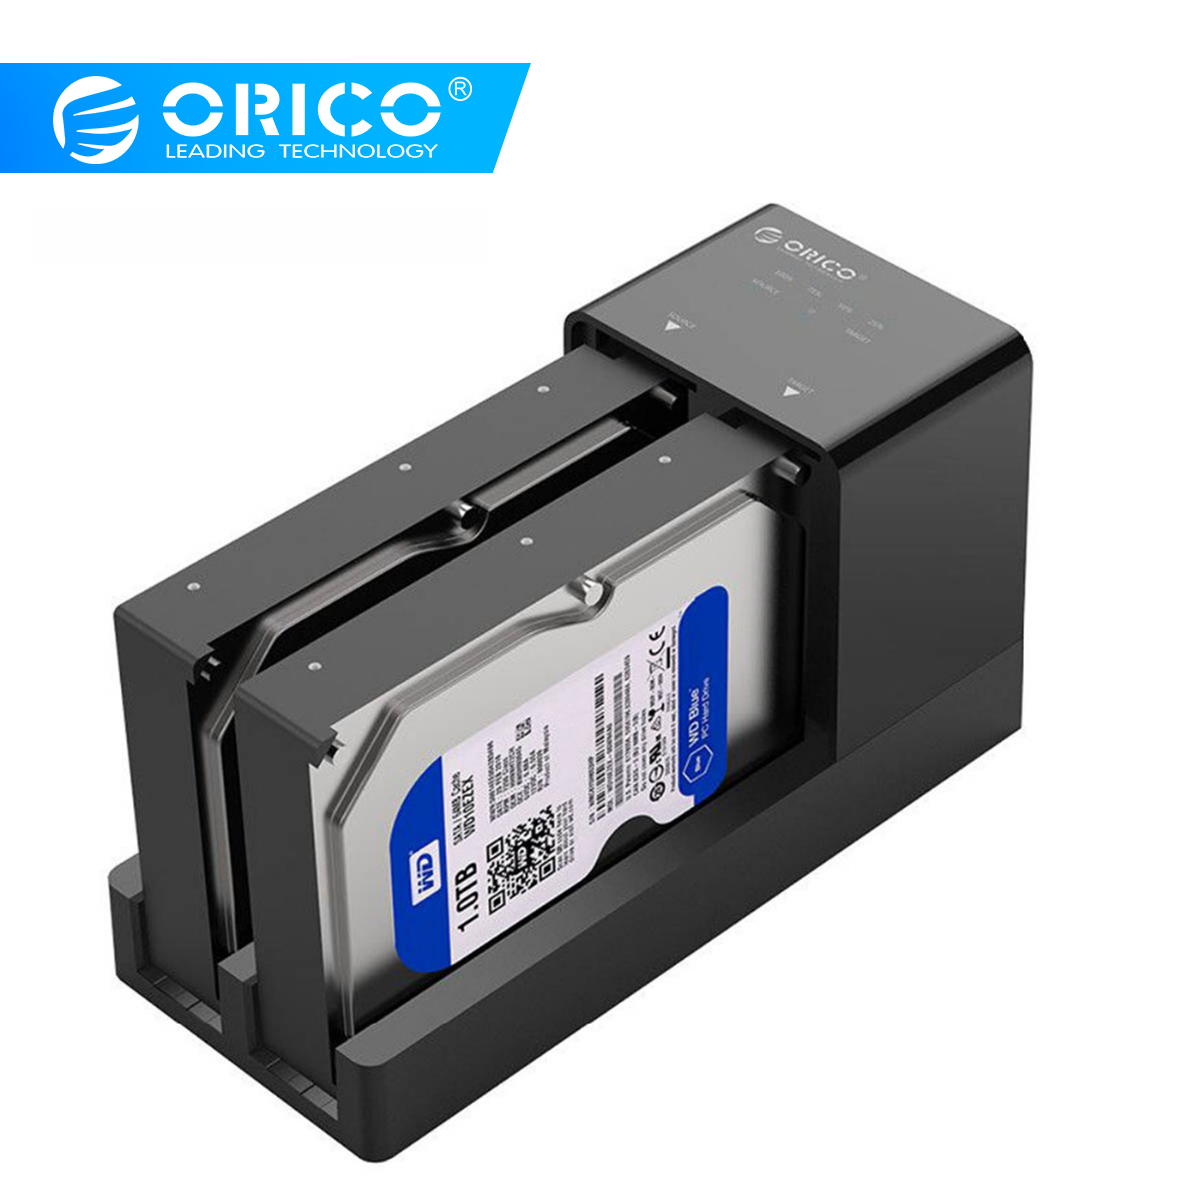 ORICO 2.5 3.5 SATA HDD Enclosure Docking Station Offline Clone Super Speed USB 3.0 Hard Drive Support 10TB 2 Bay black 6528US3-C